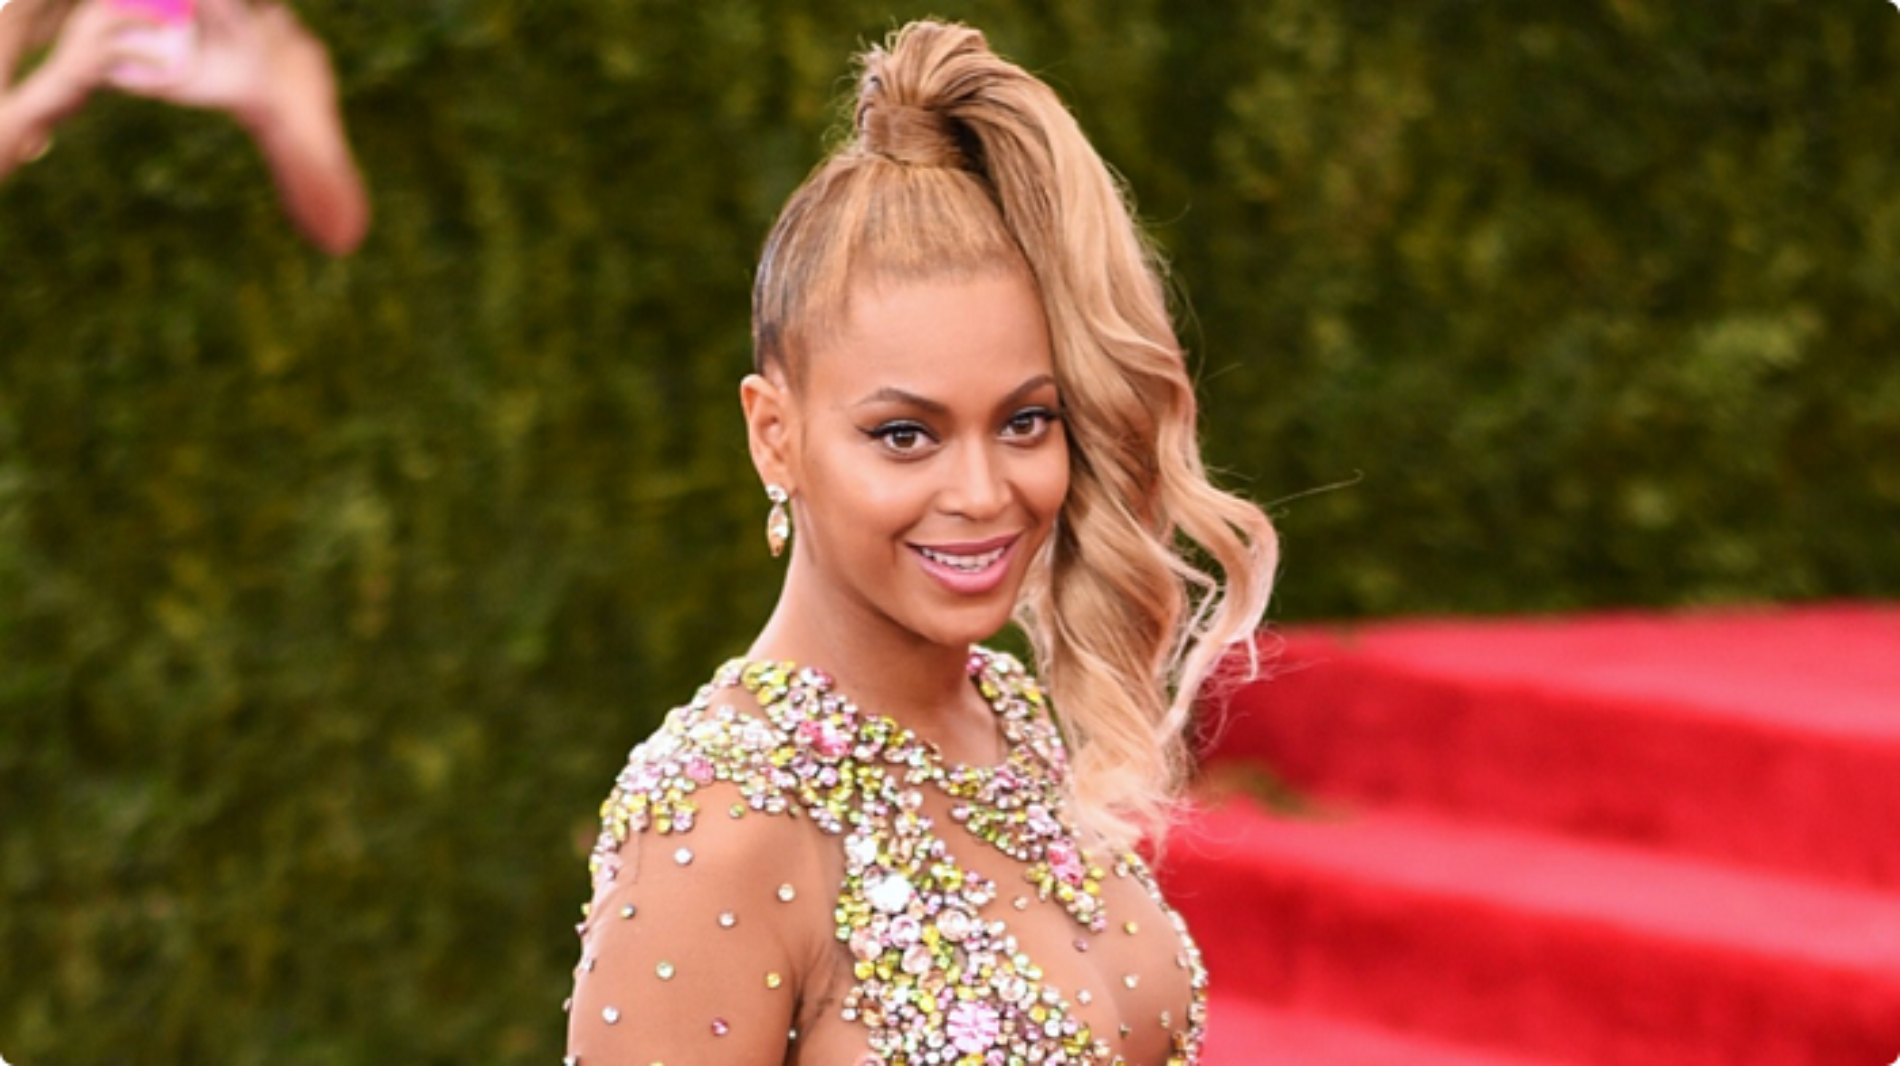 Fan Petitions For Beyoncé's Birthday To Be Declared A National Holiday